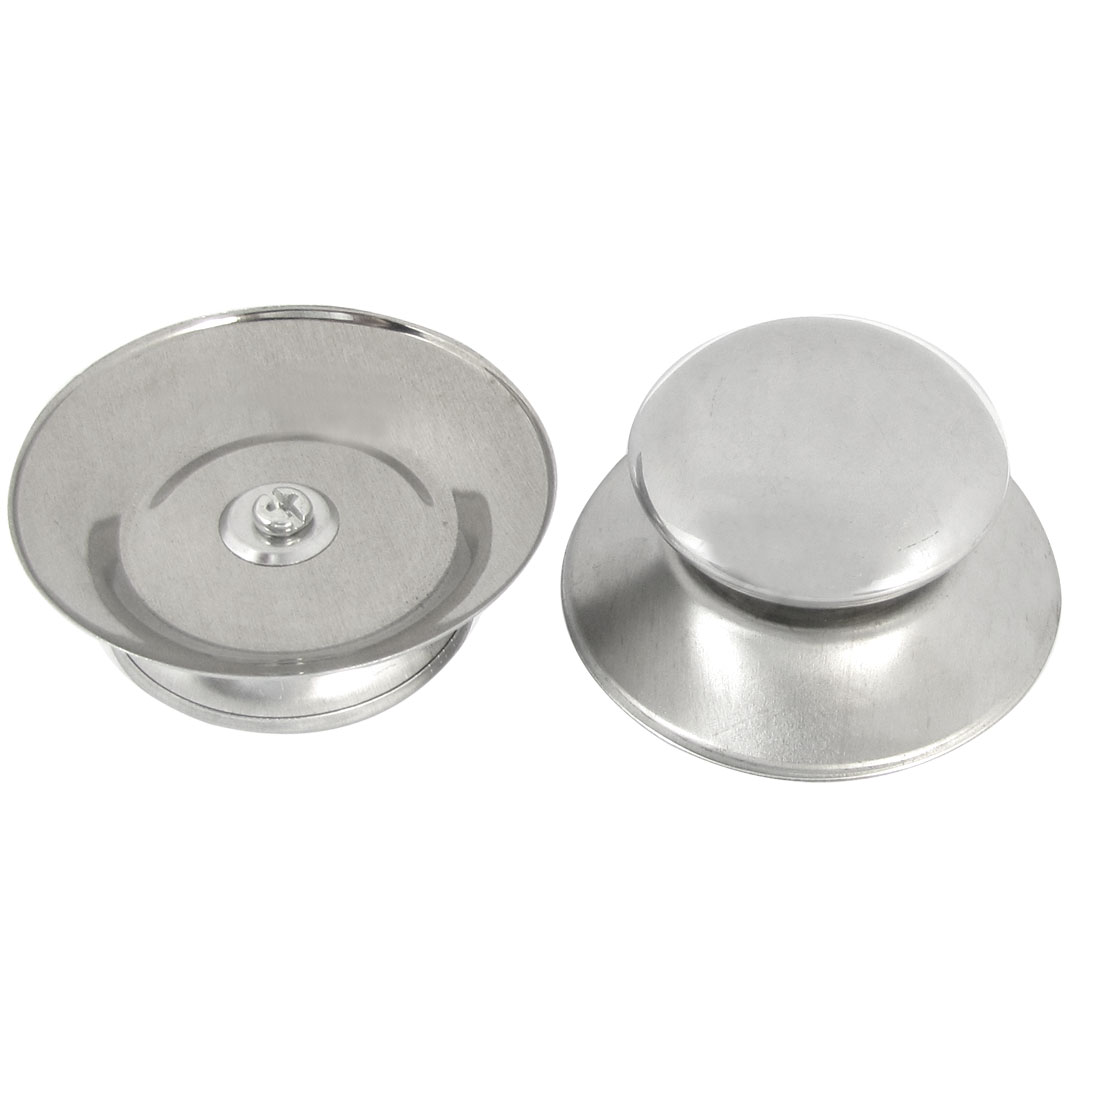 Metal Silver Tone Kitchenware Pan Pot Lid Cover Knob 68mm Dia 2PCS